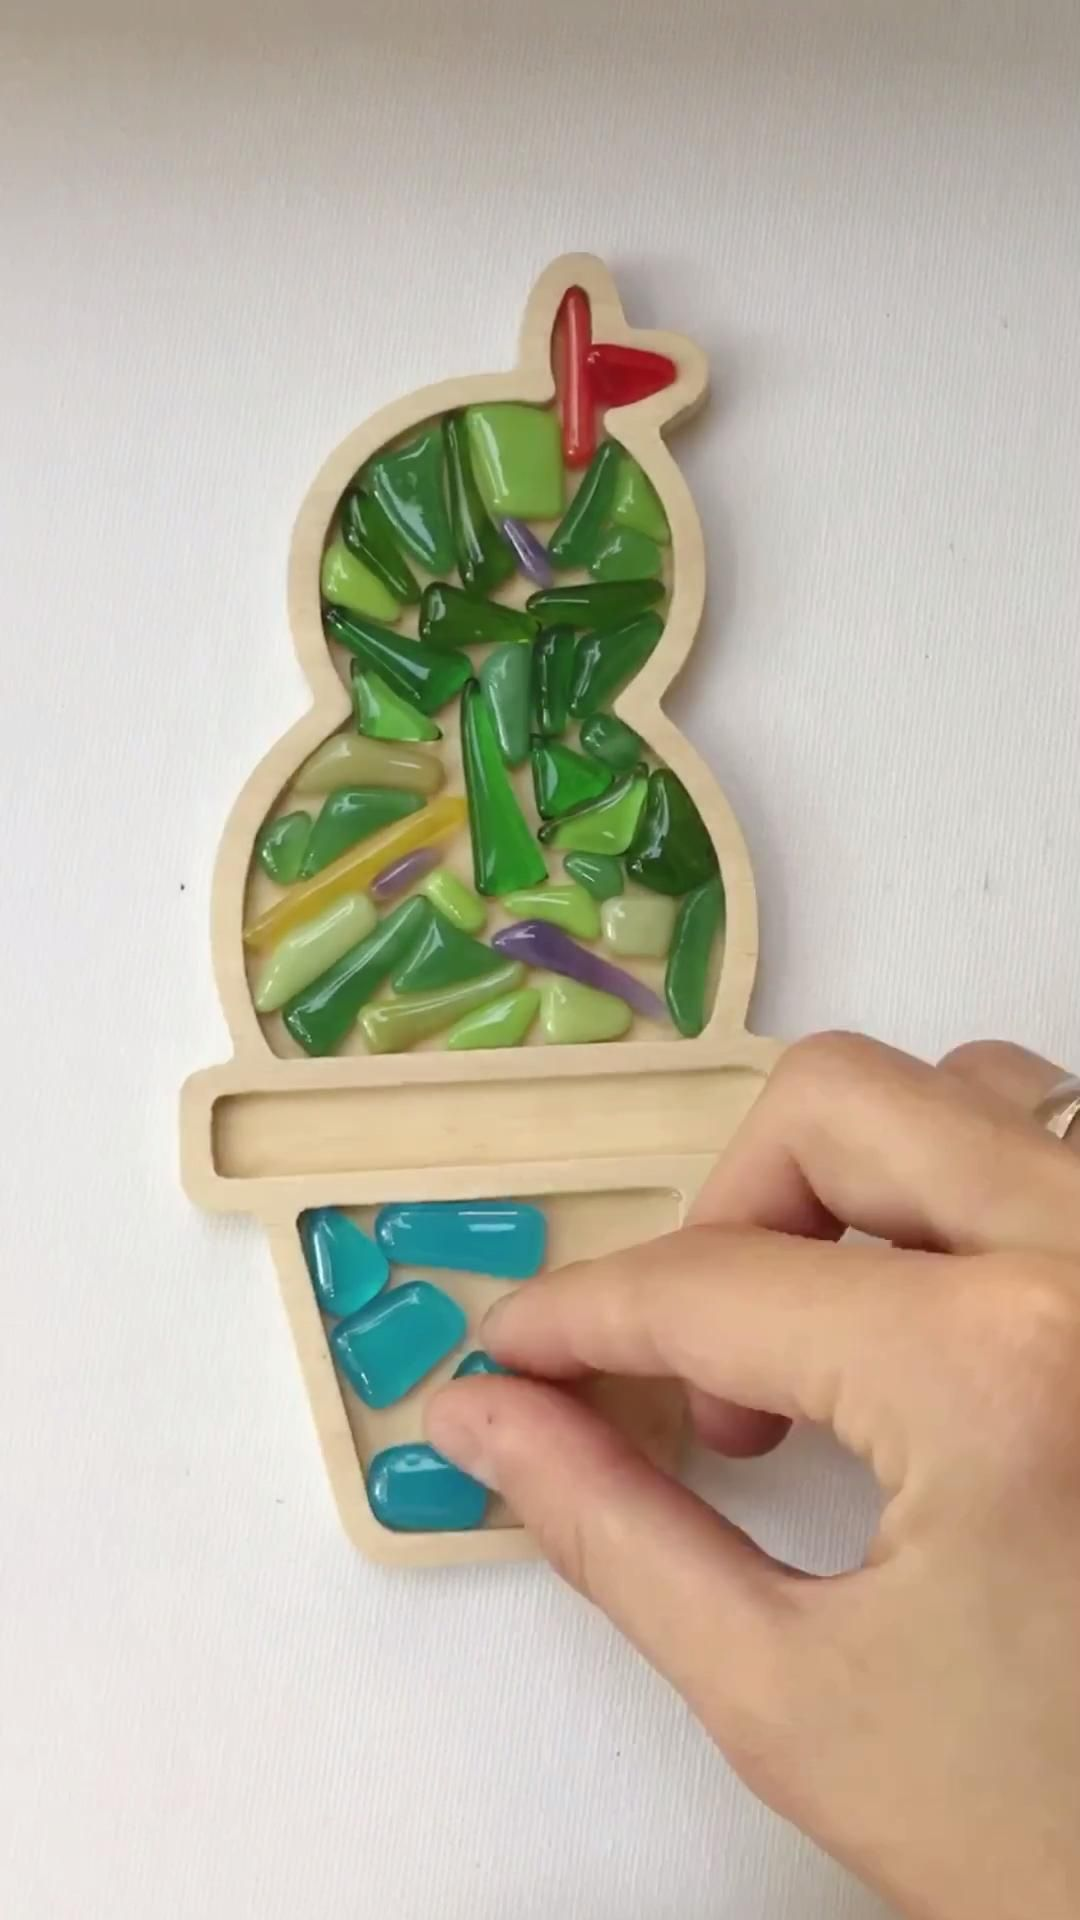 Stained glass art project for kids -   18 diy projects for kids room ideas